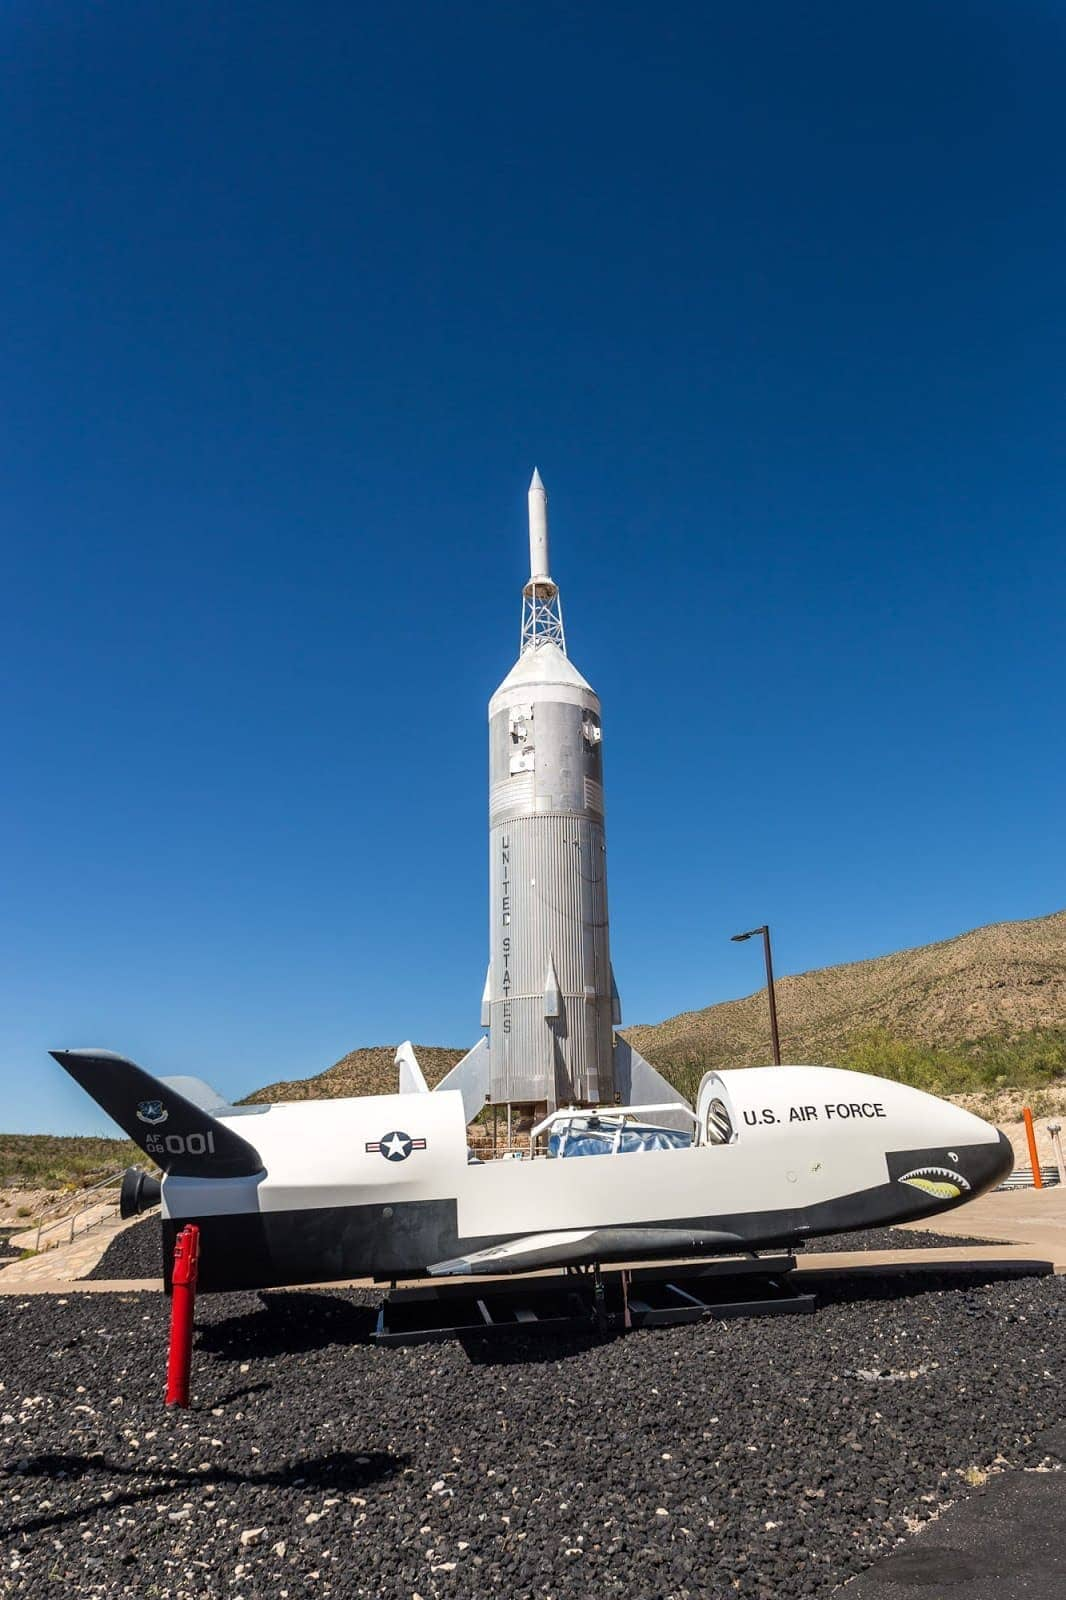 The New Mexico Museum of Space History%252C Alamogordo_by_Laurence Norah-4